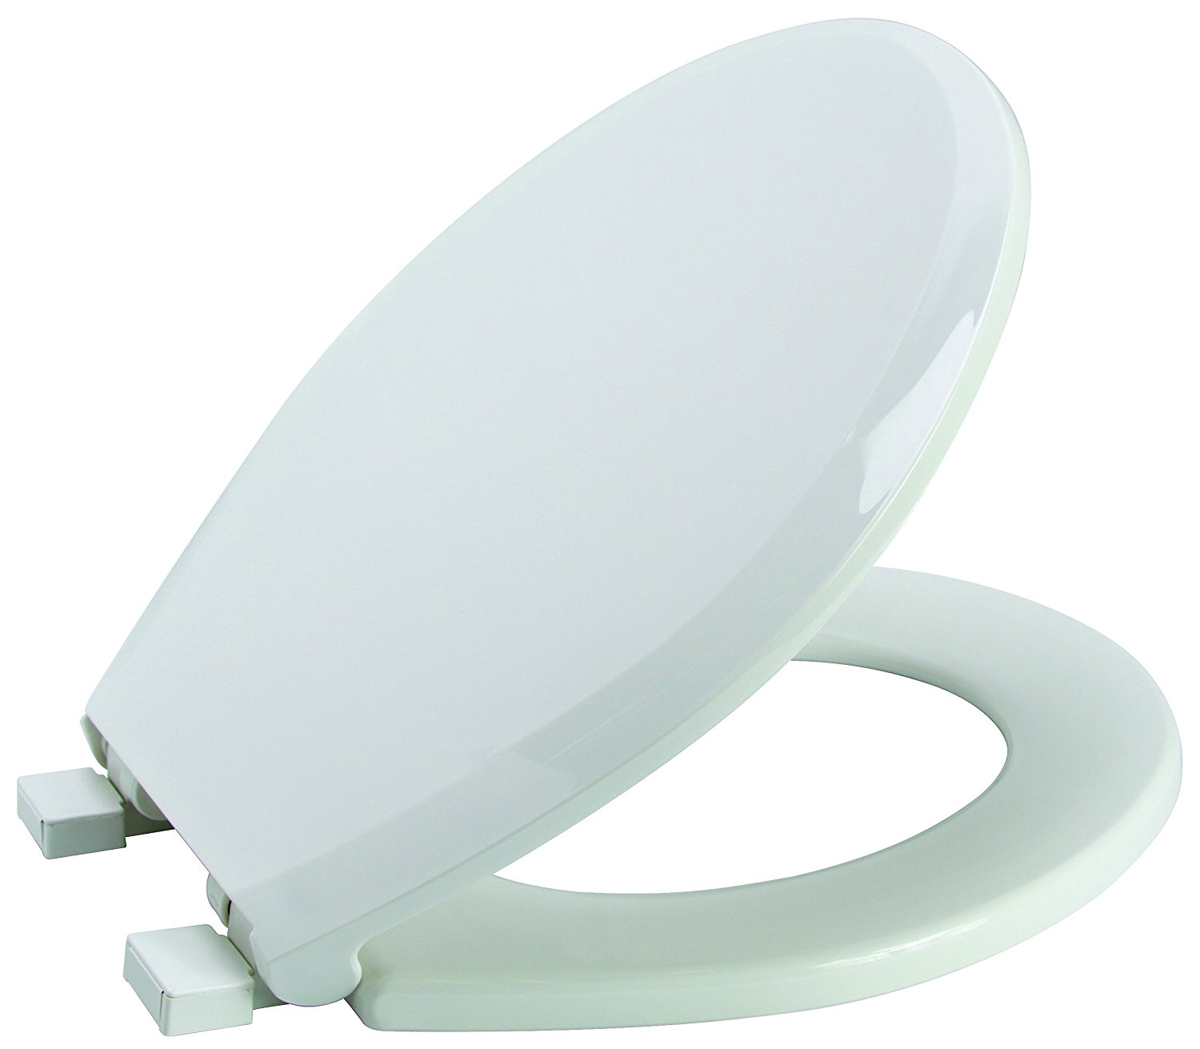 Premier Slow-Close Round Plastic Toilet Seat, White